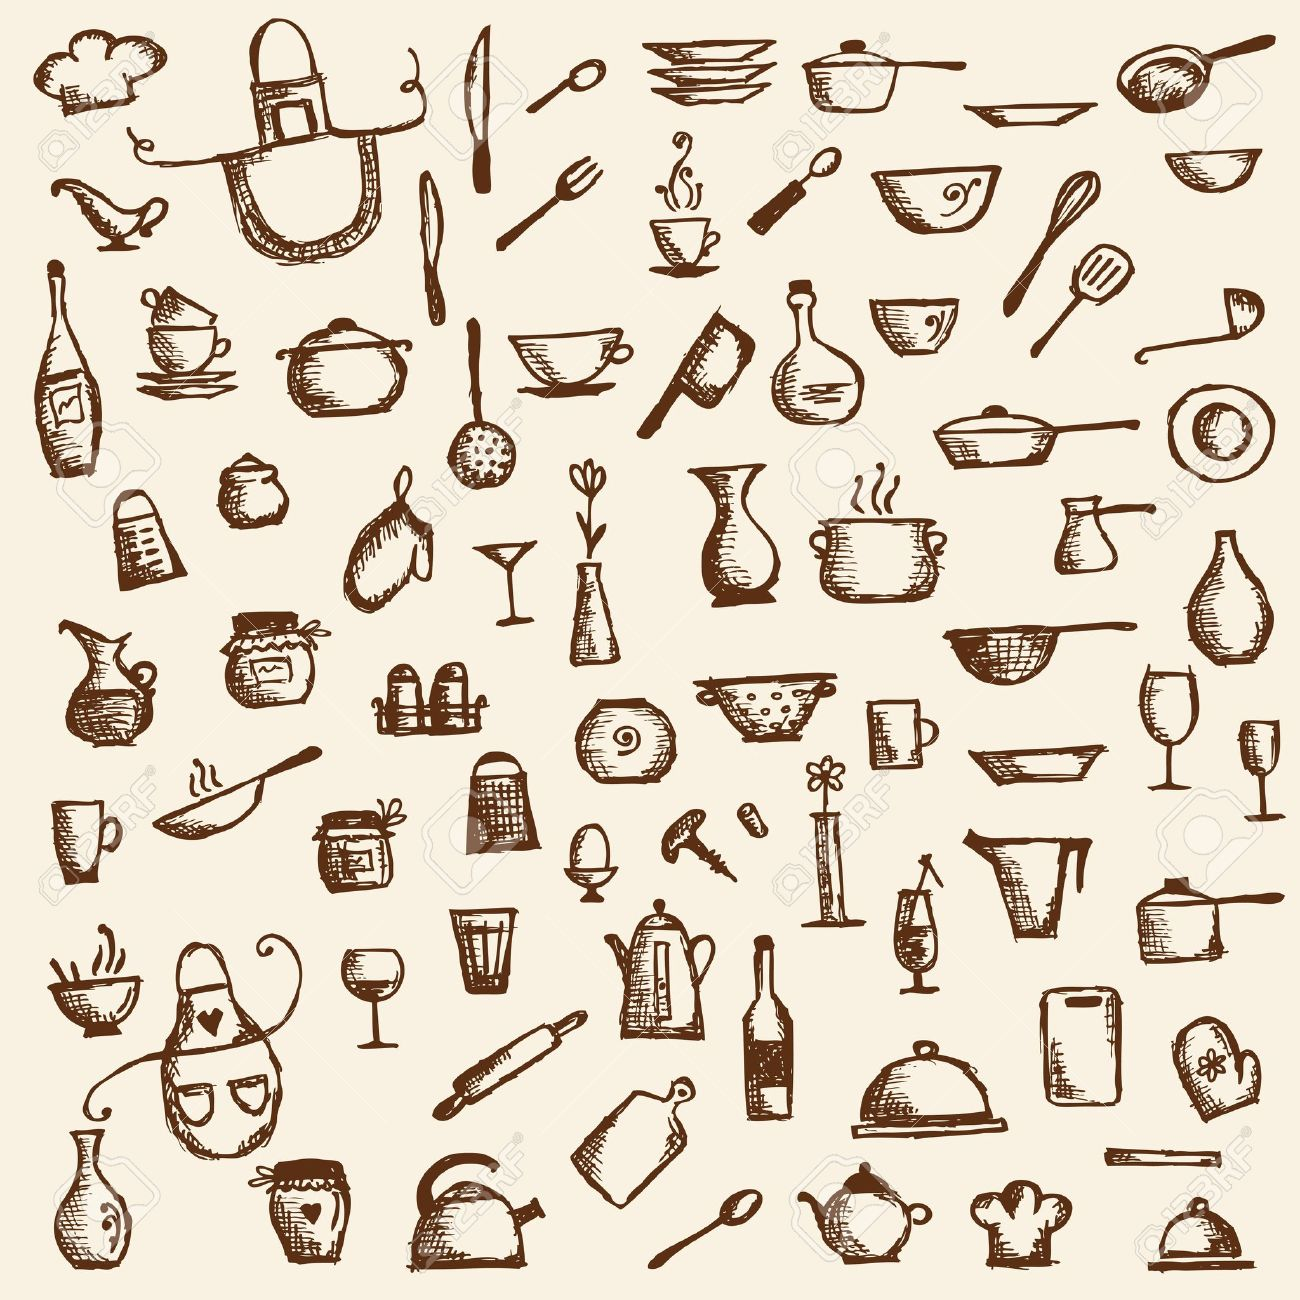 Kitchen Utensils Drawings Kitchen Utensils Sketch